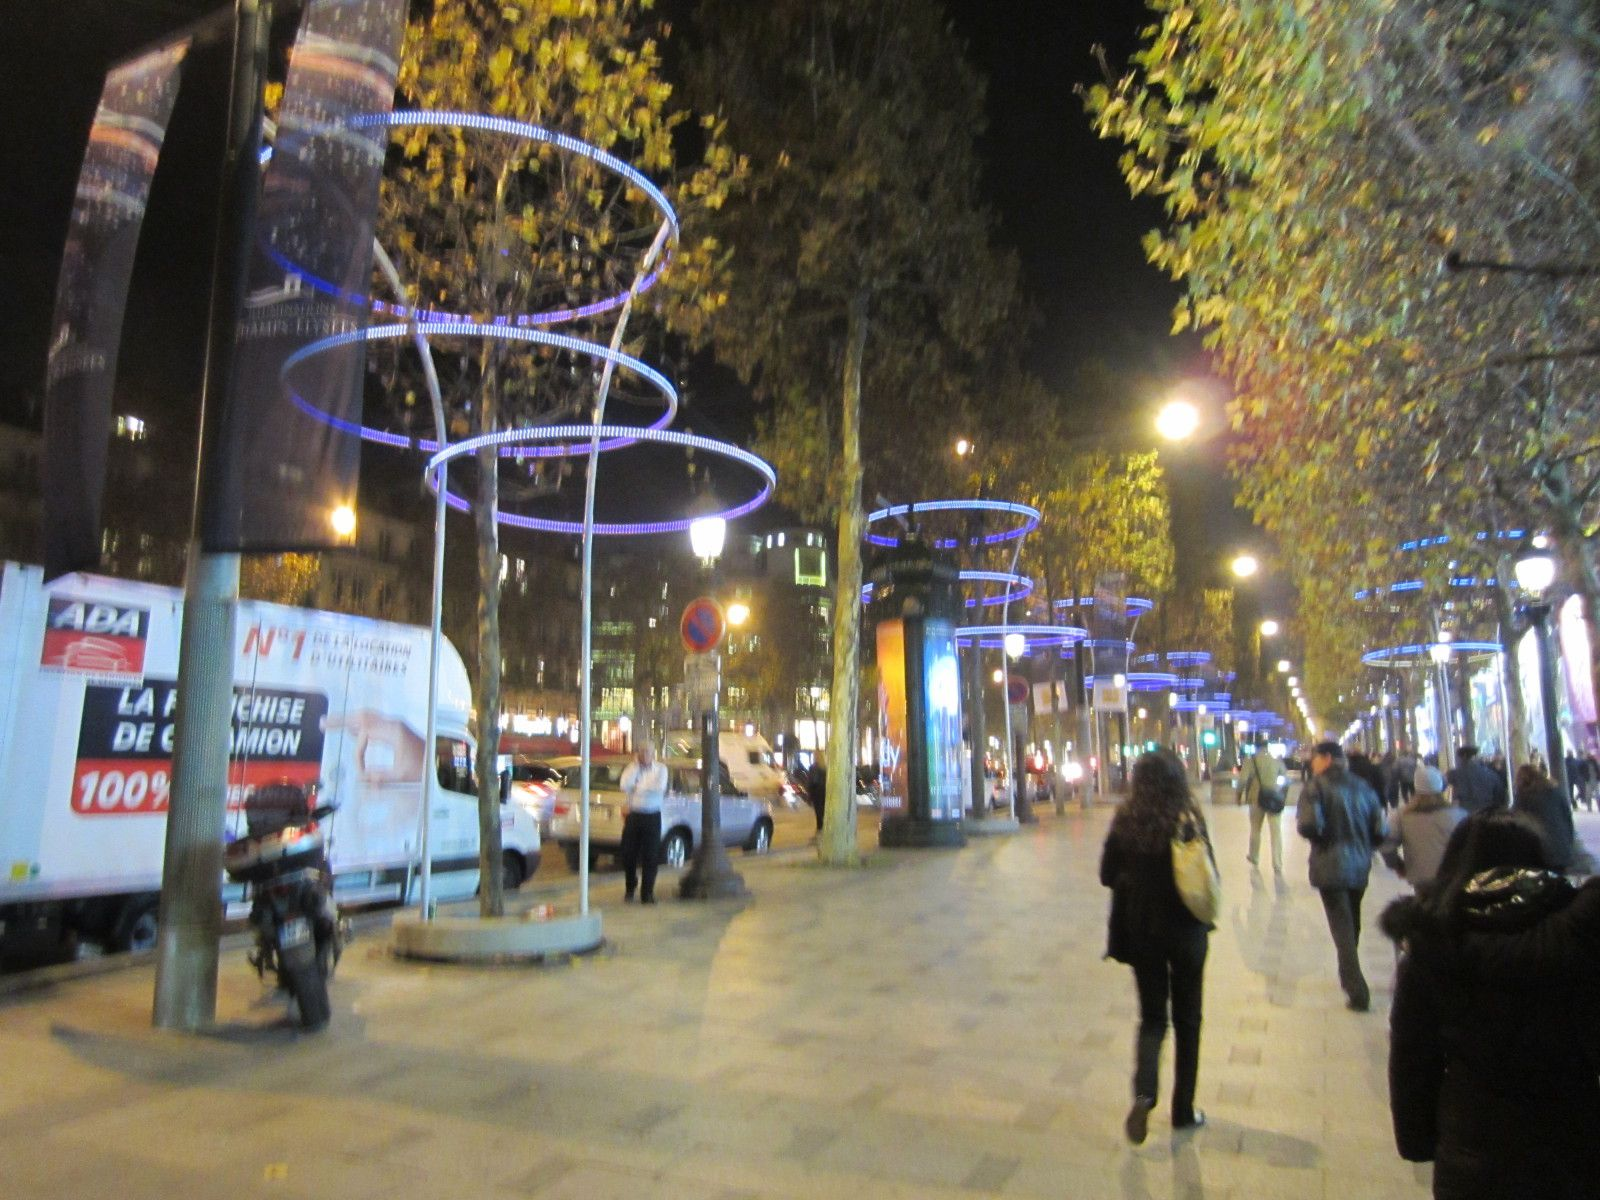 #987D33 ImmoAlternativ€: Avenue Des Champs Elysées Illuminations 2012 5365 decorations de noel champs elysees 1600x1200 px @ aertt.com